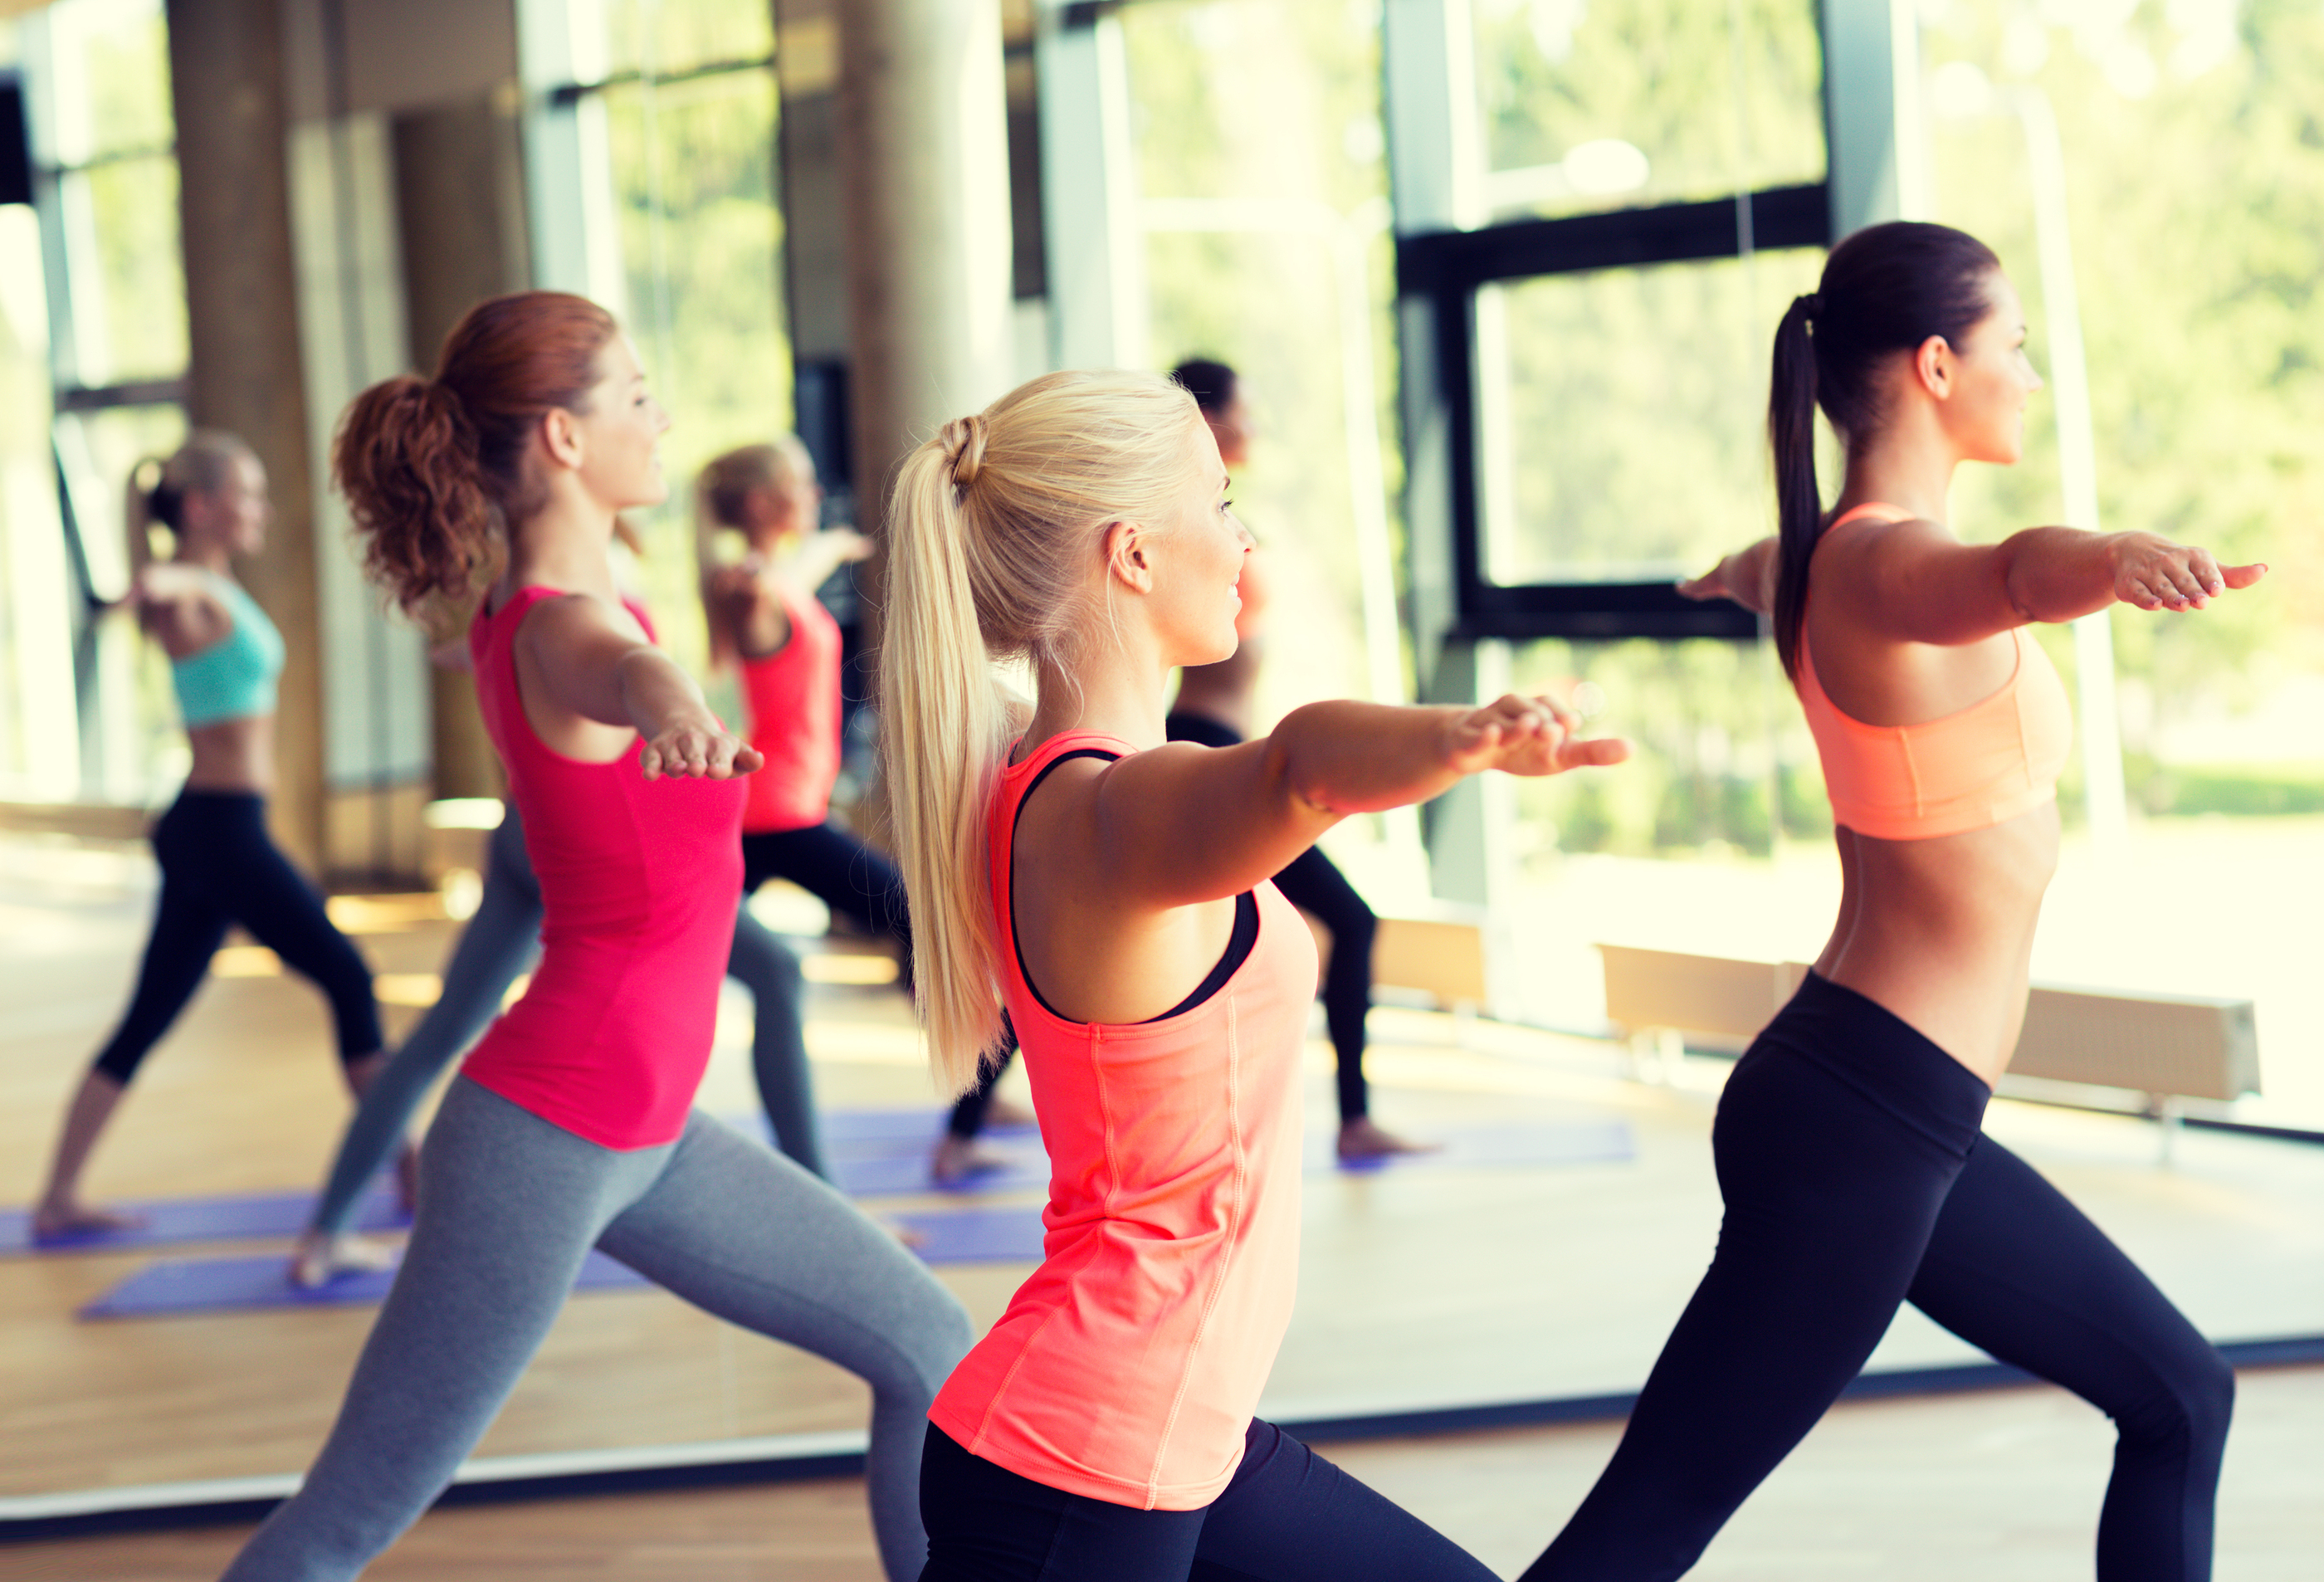 Fitness instructor sharing group exercise cues that stick